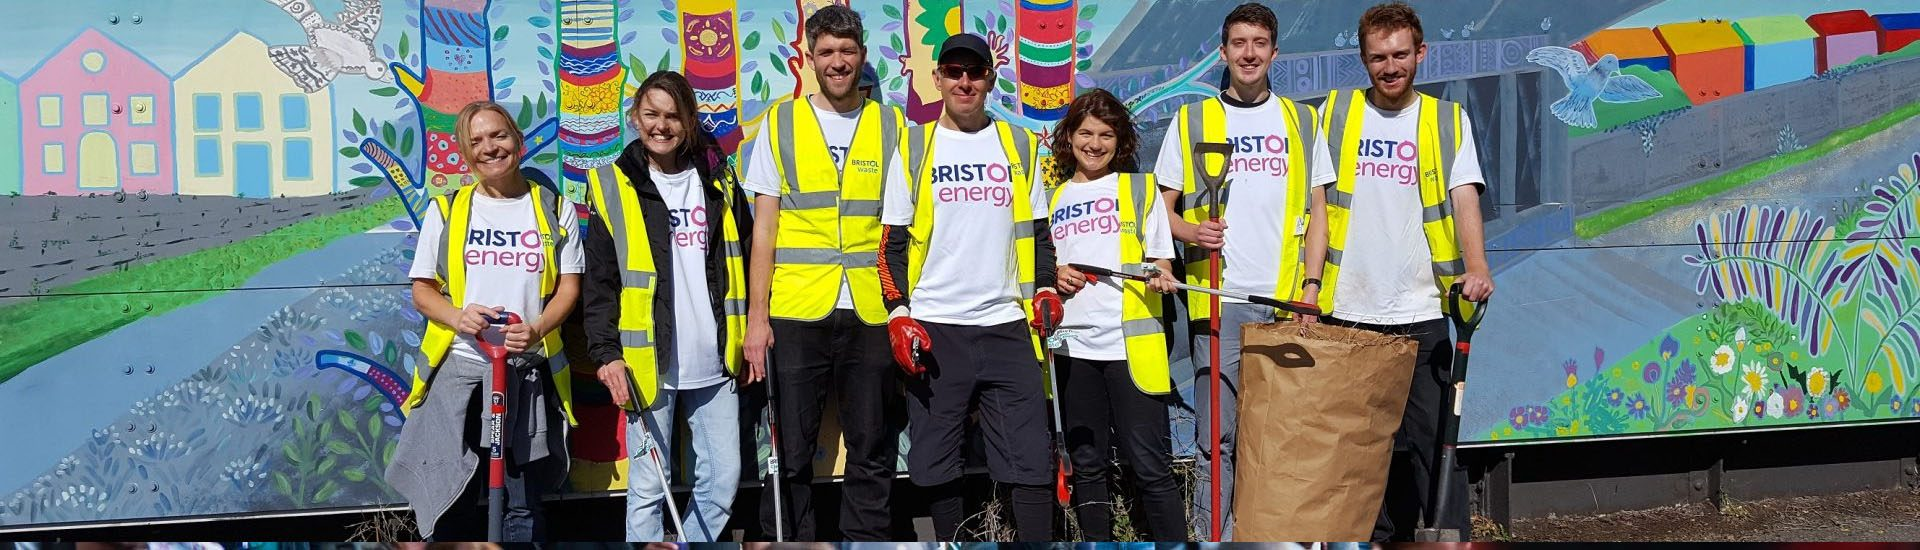 Bristol Energy group